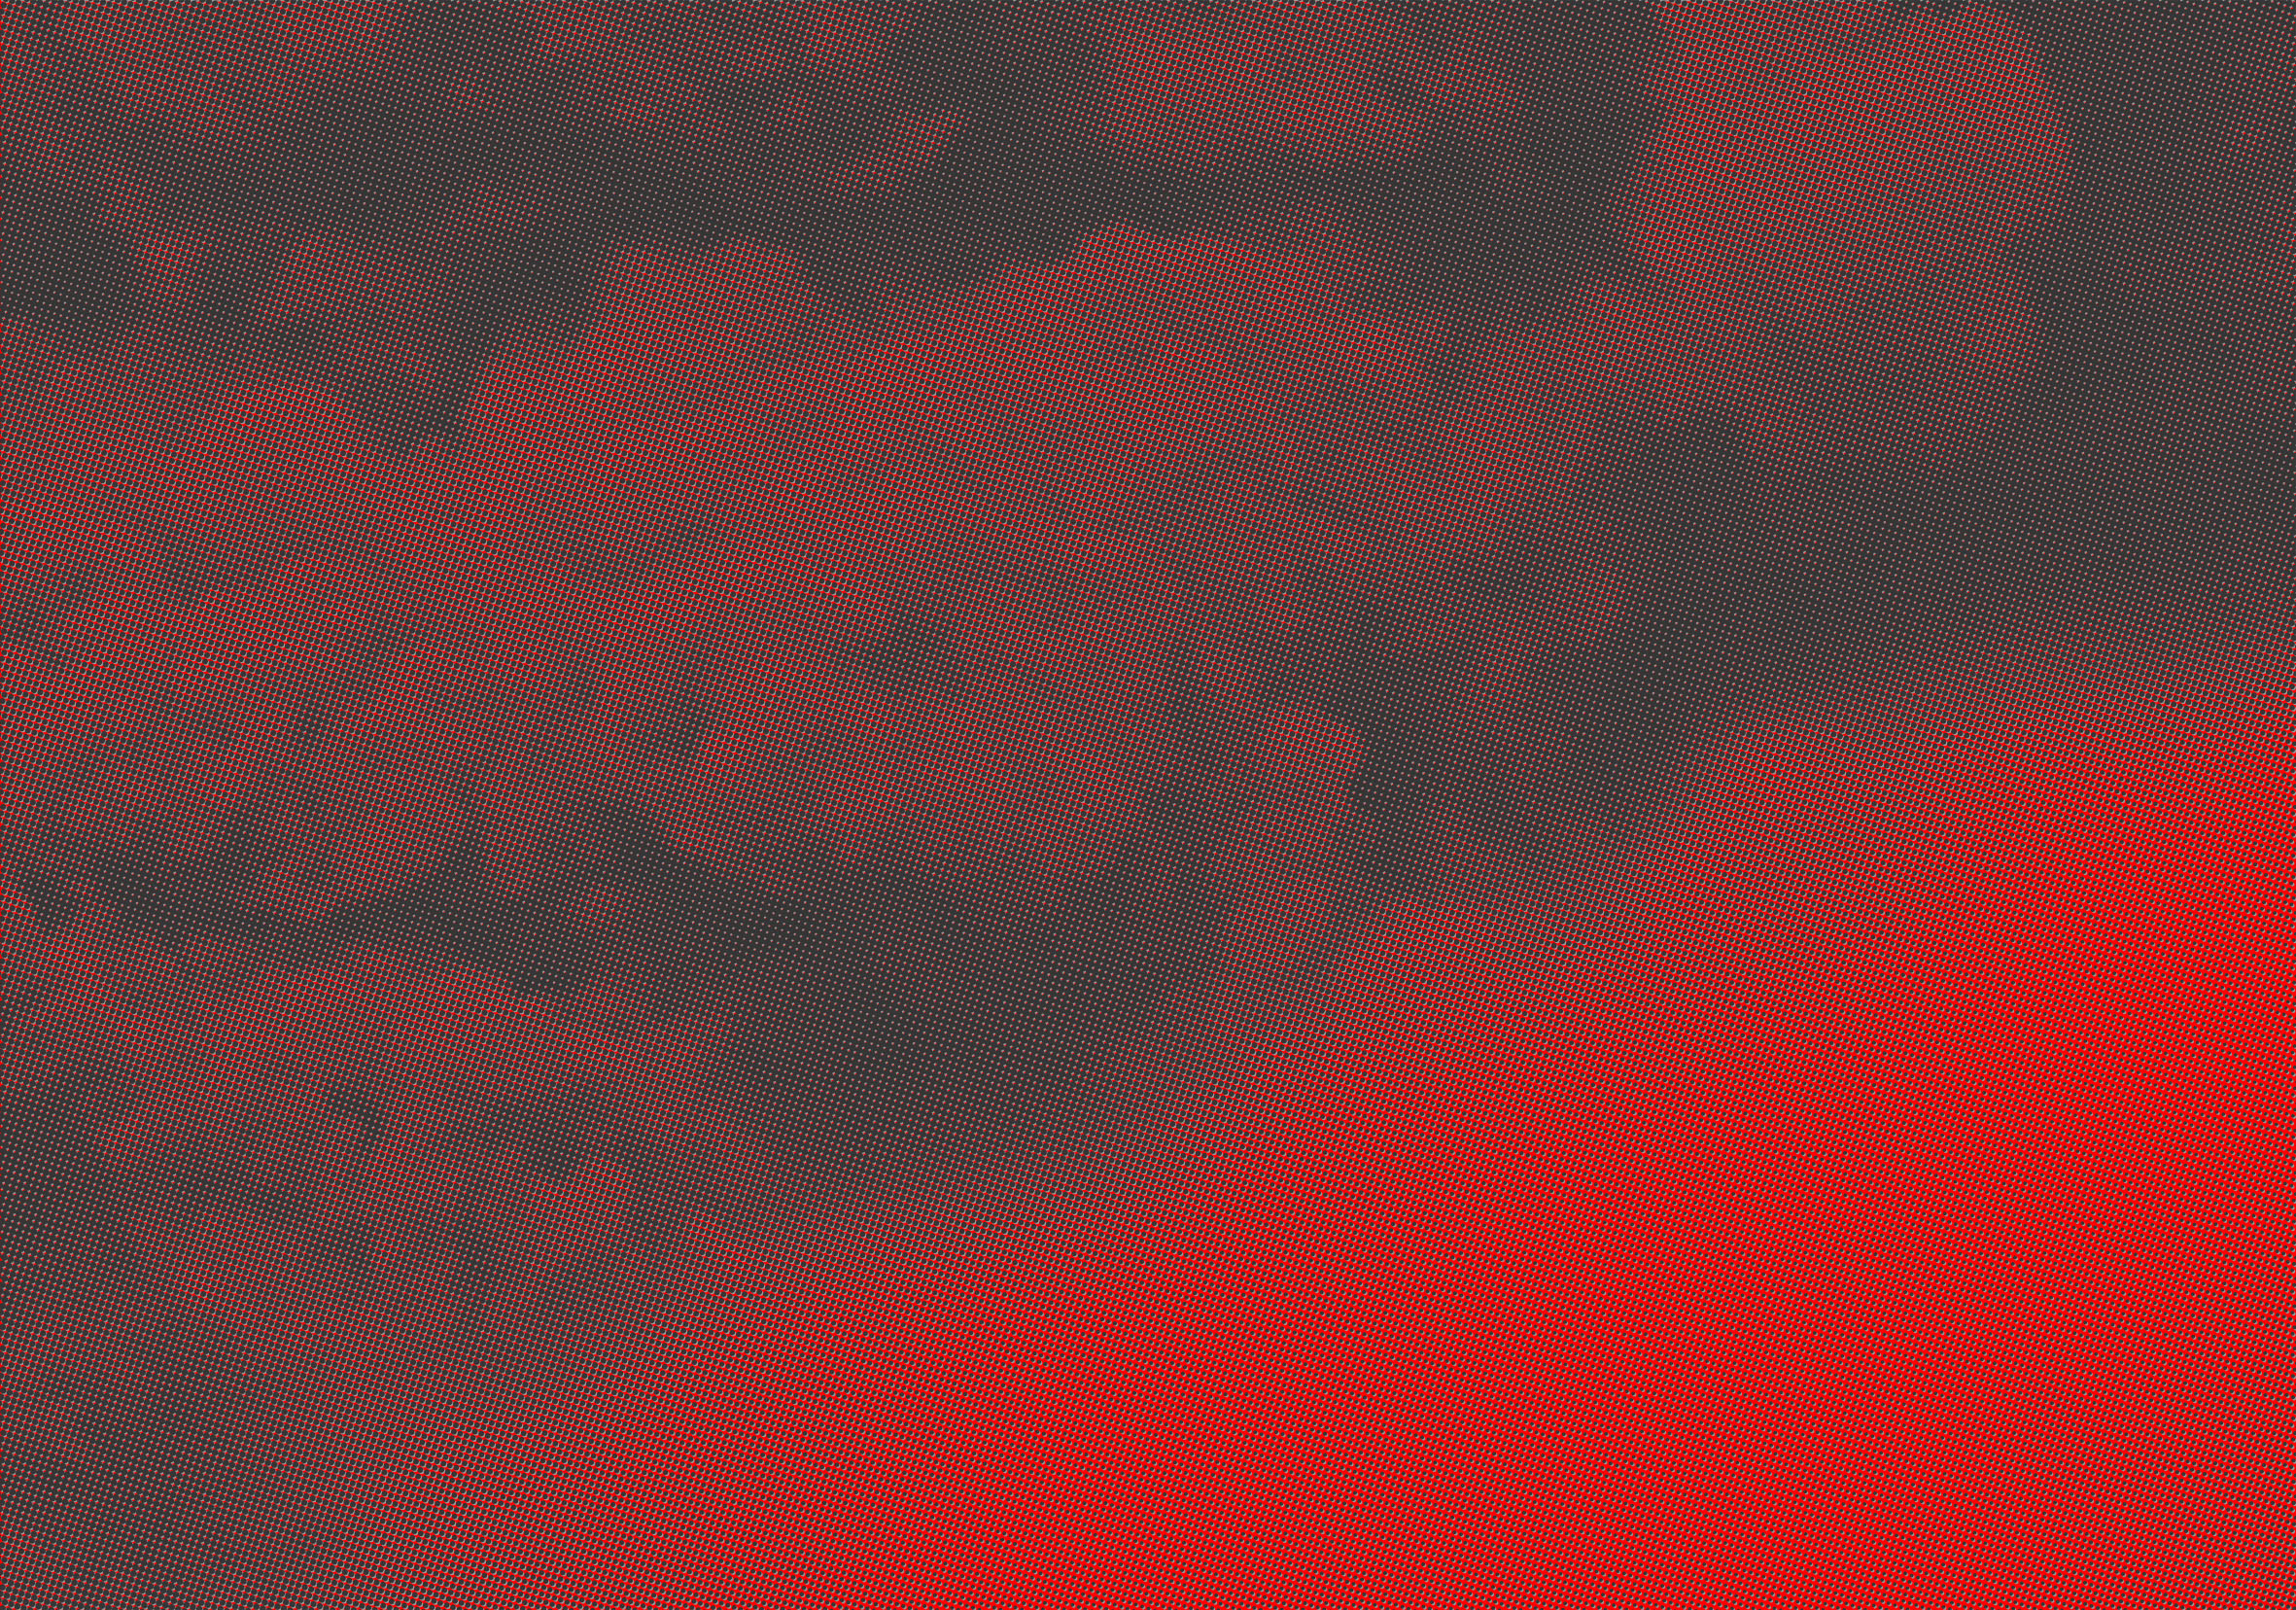 'Red Smoke' 2015  Large format constructed digital image